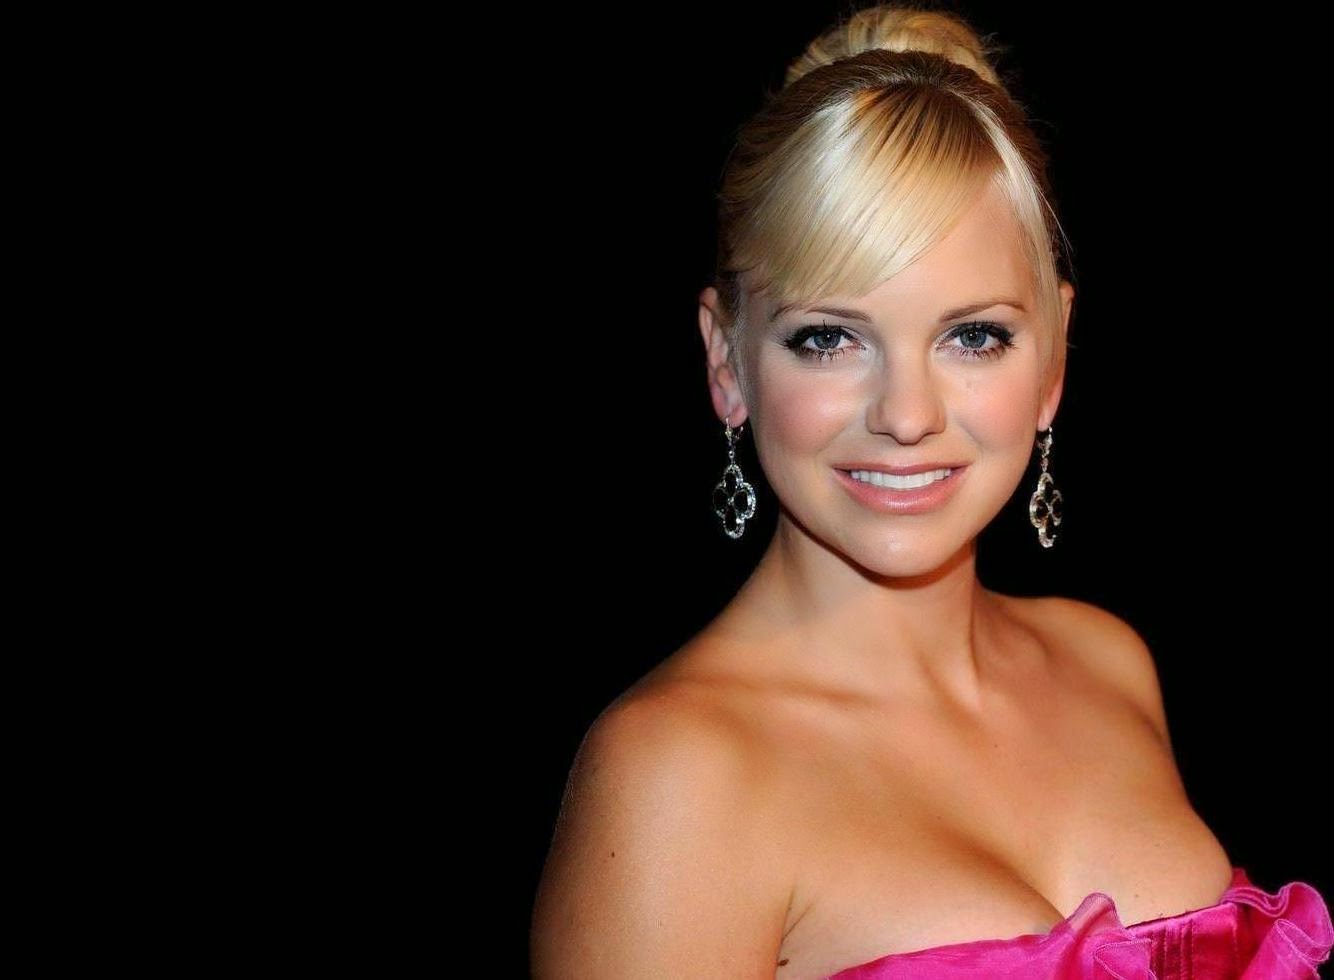 Anna Faris Wallpapers Free Download